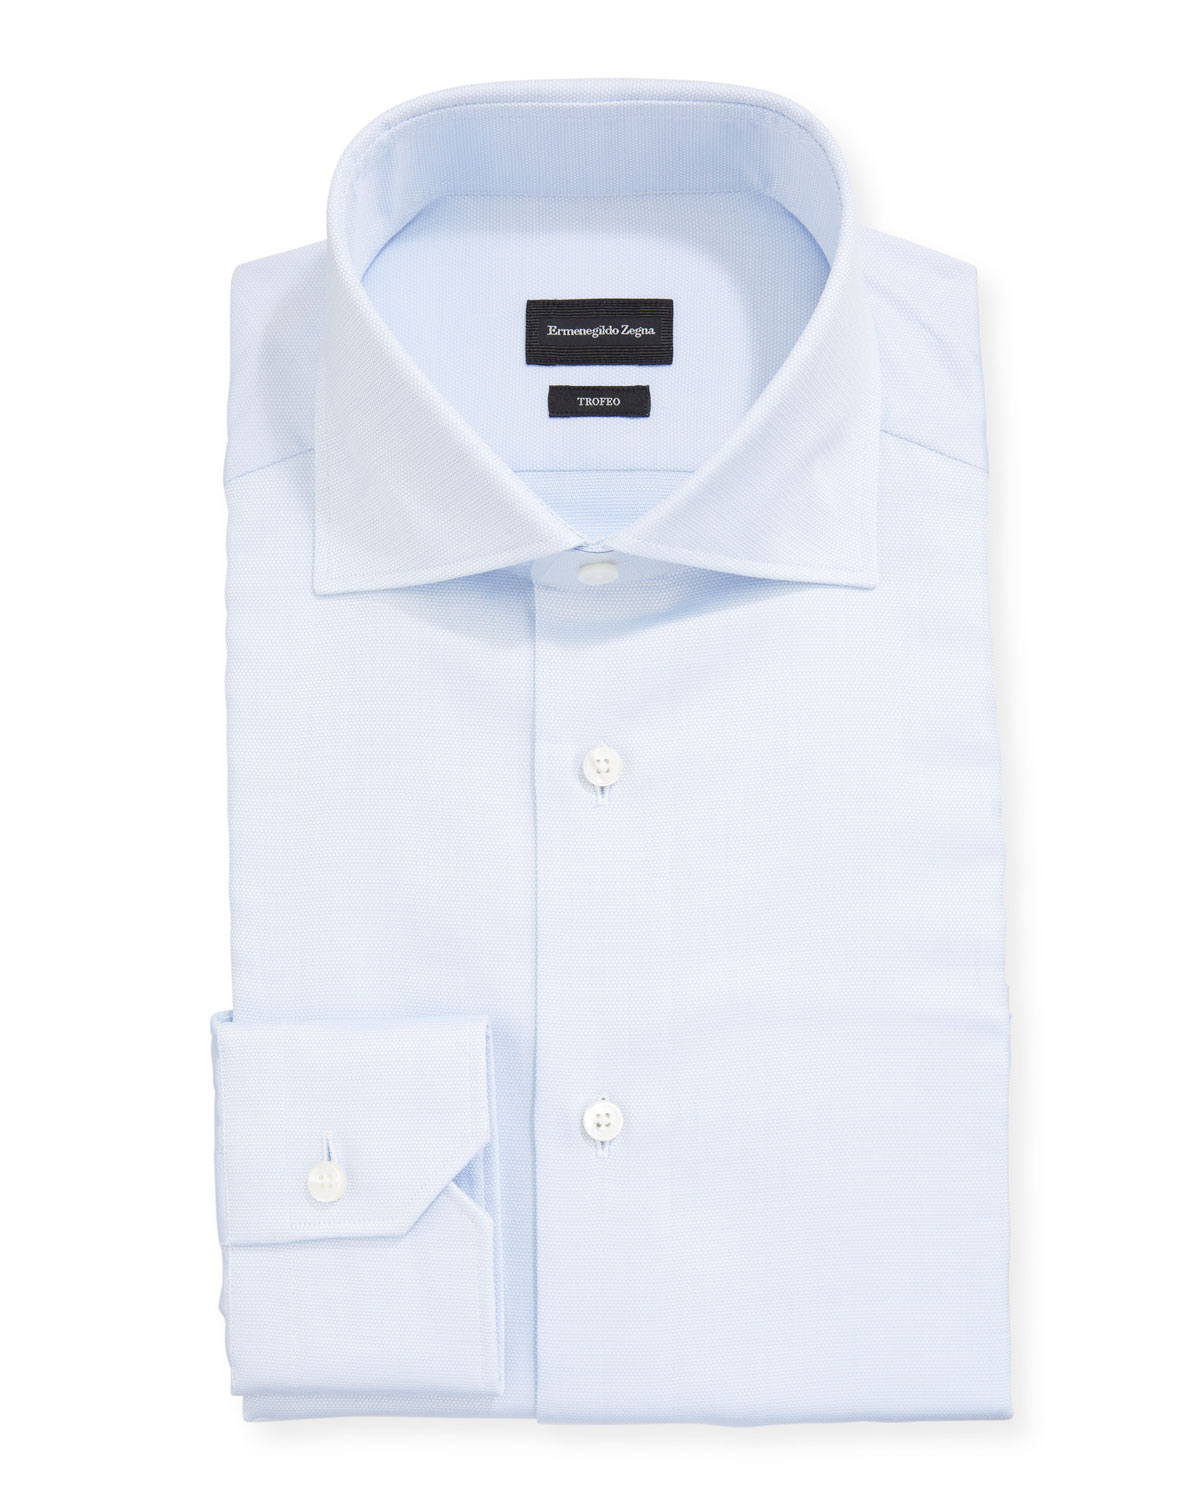 Ermenegildo Zegna Dresses MEN'S TROFEO SOLID COTTON DRESS SHIRT